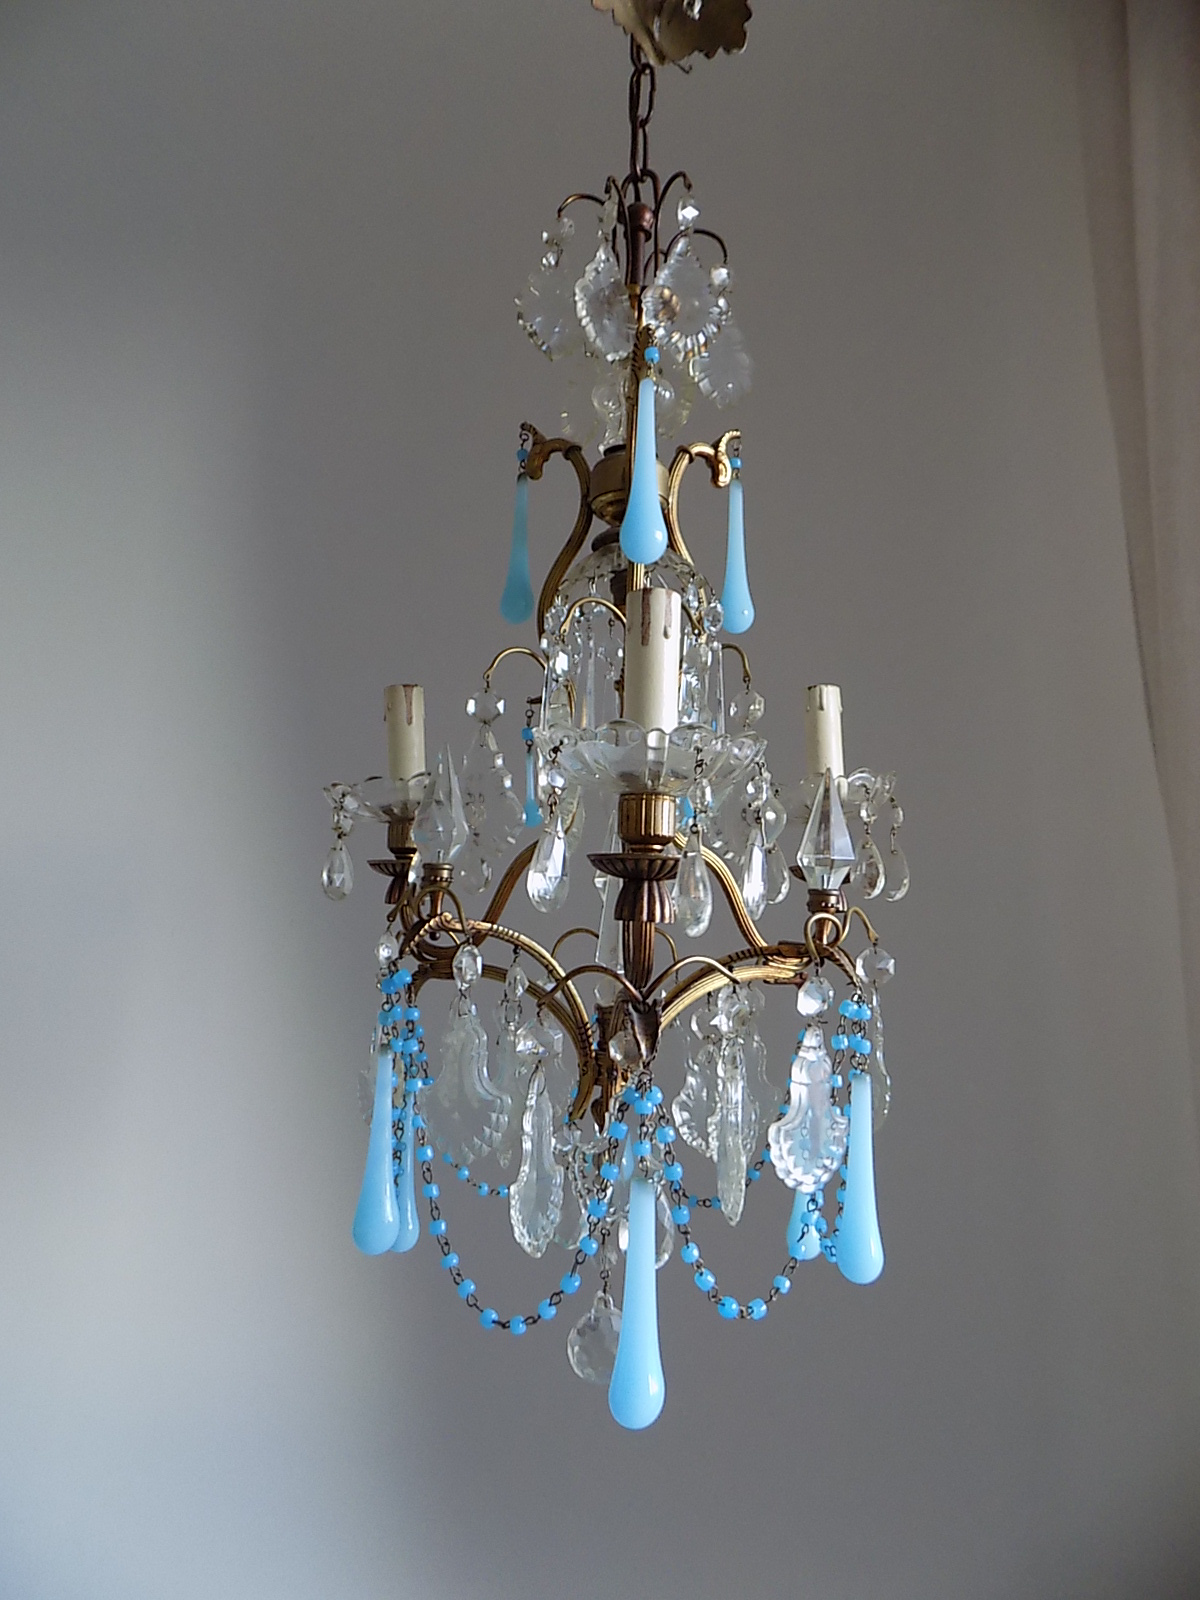 Rare antique Murano opaline drops chandelier